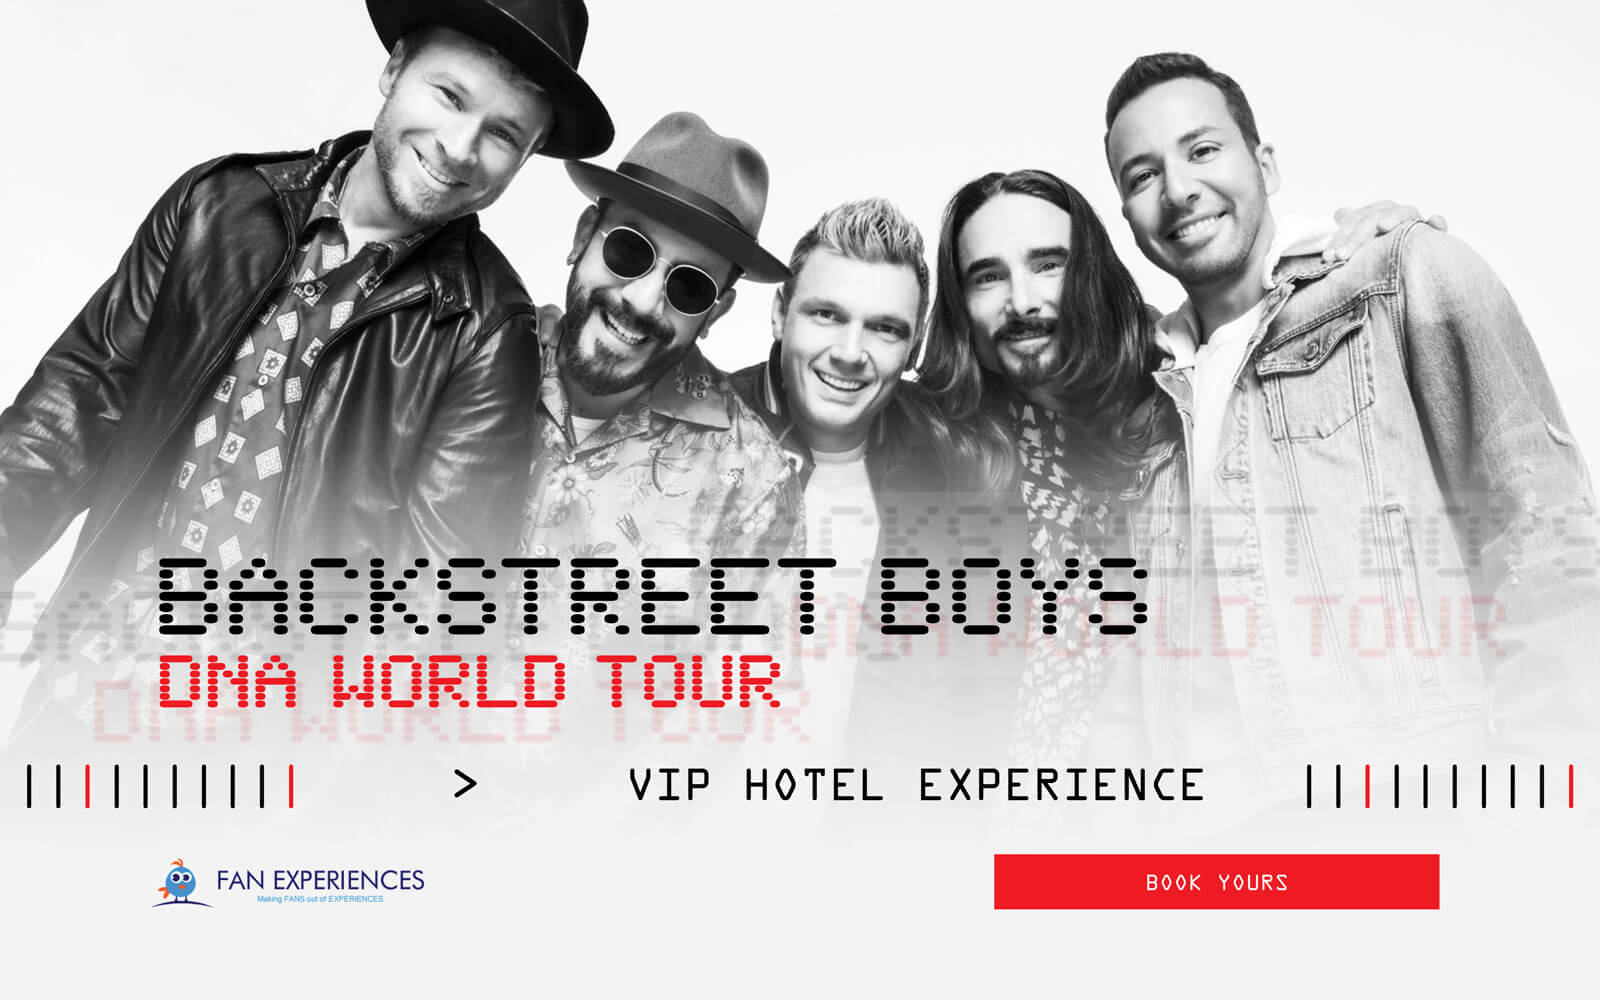 Backstreet Boys DNA World Tour VIP Hotel Experience